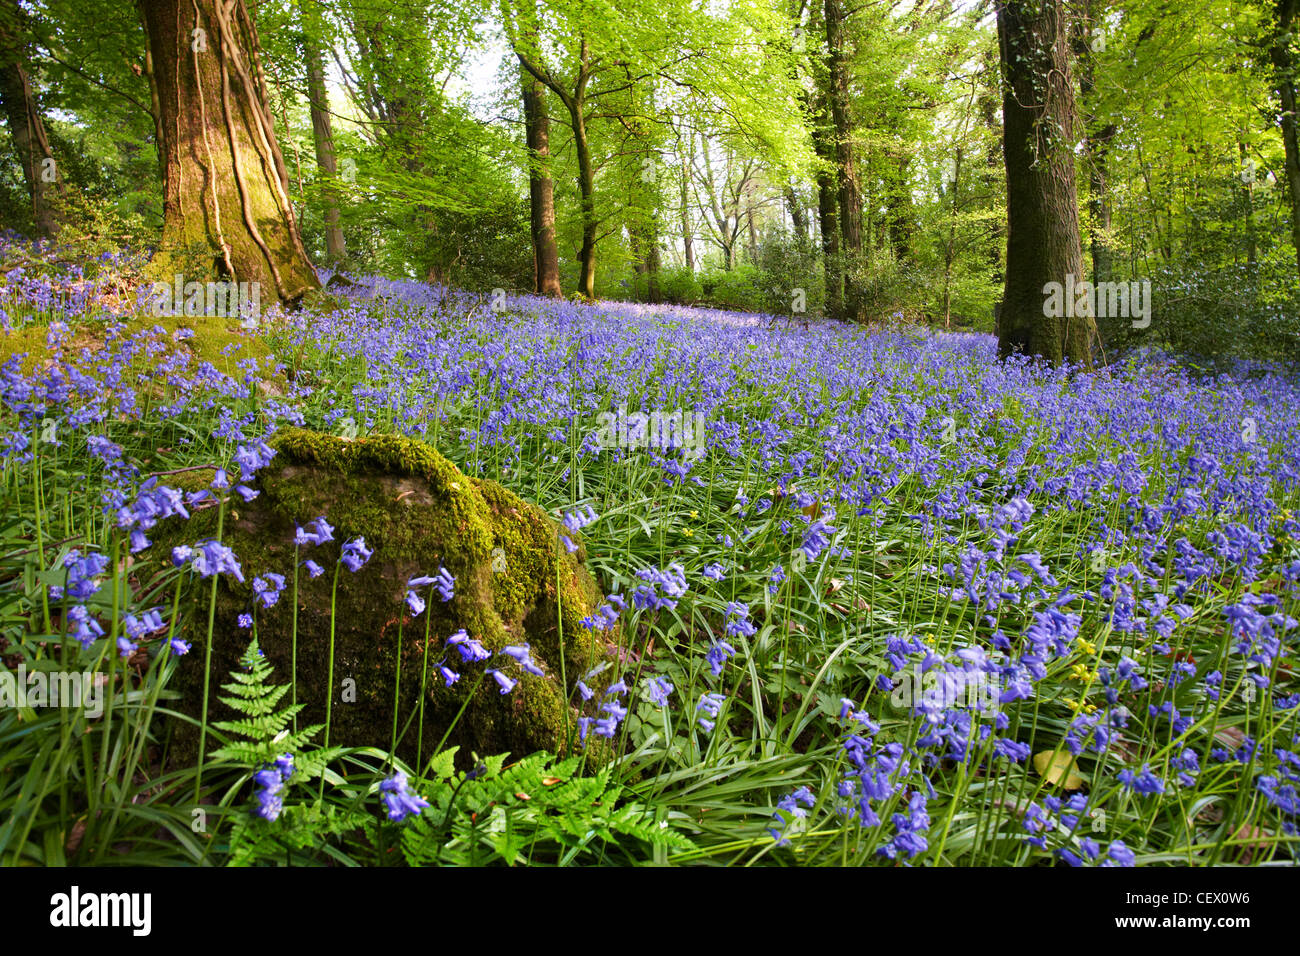 English bluebells in an ancient woodland in the Wye Valley. - Stock Image